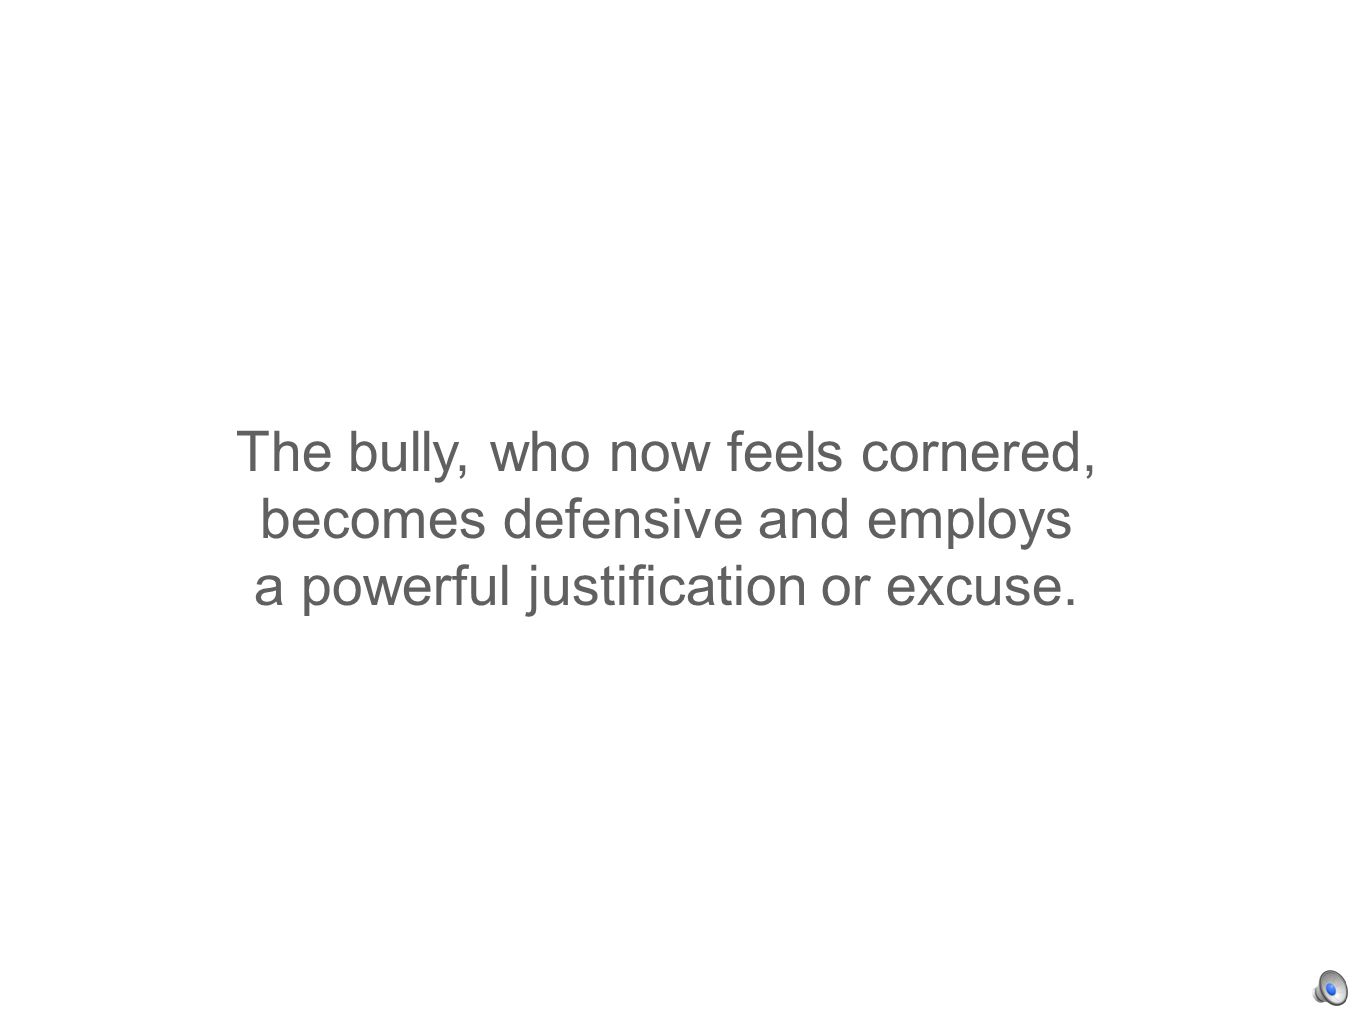 The bully, who now feels cornered, becomes defensive and employs a powerful justification or excuse.